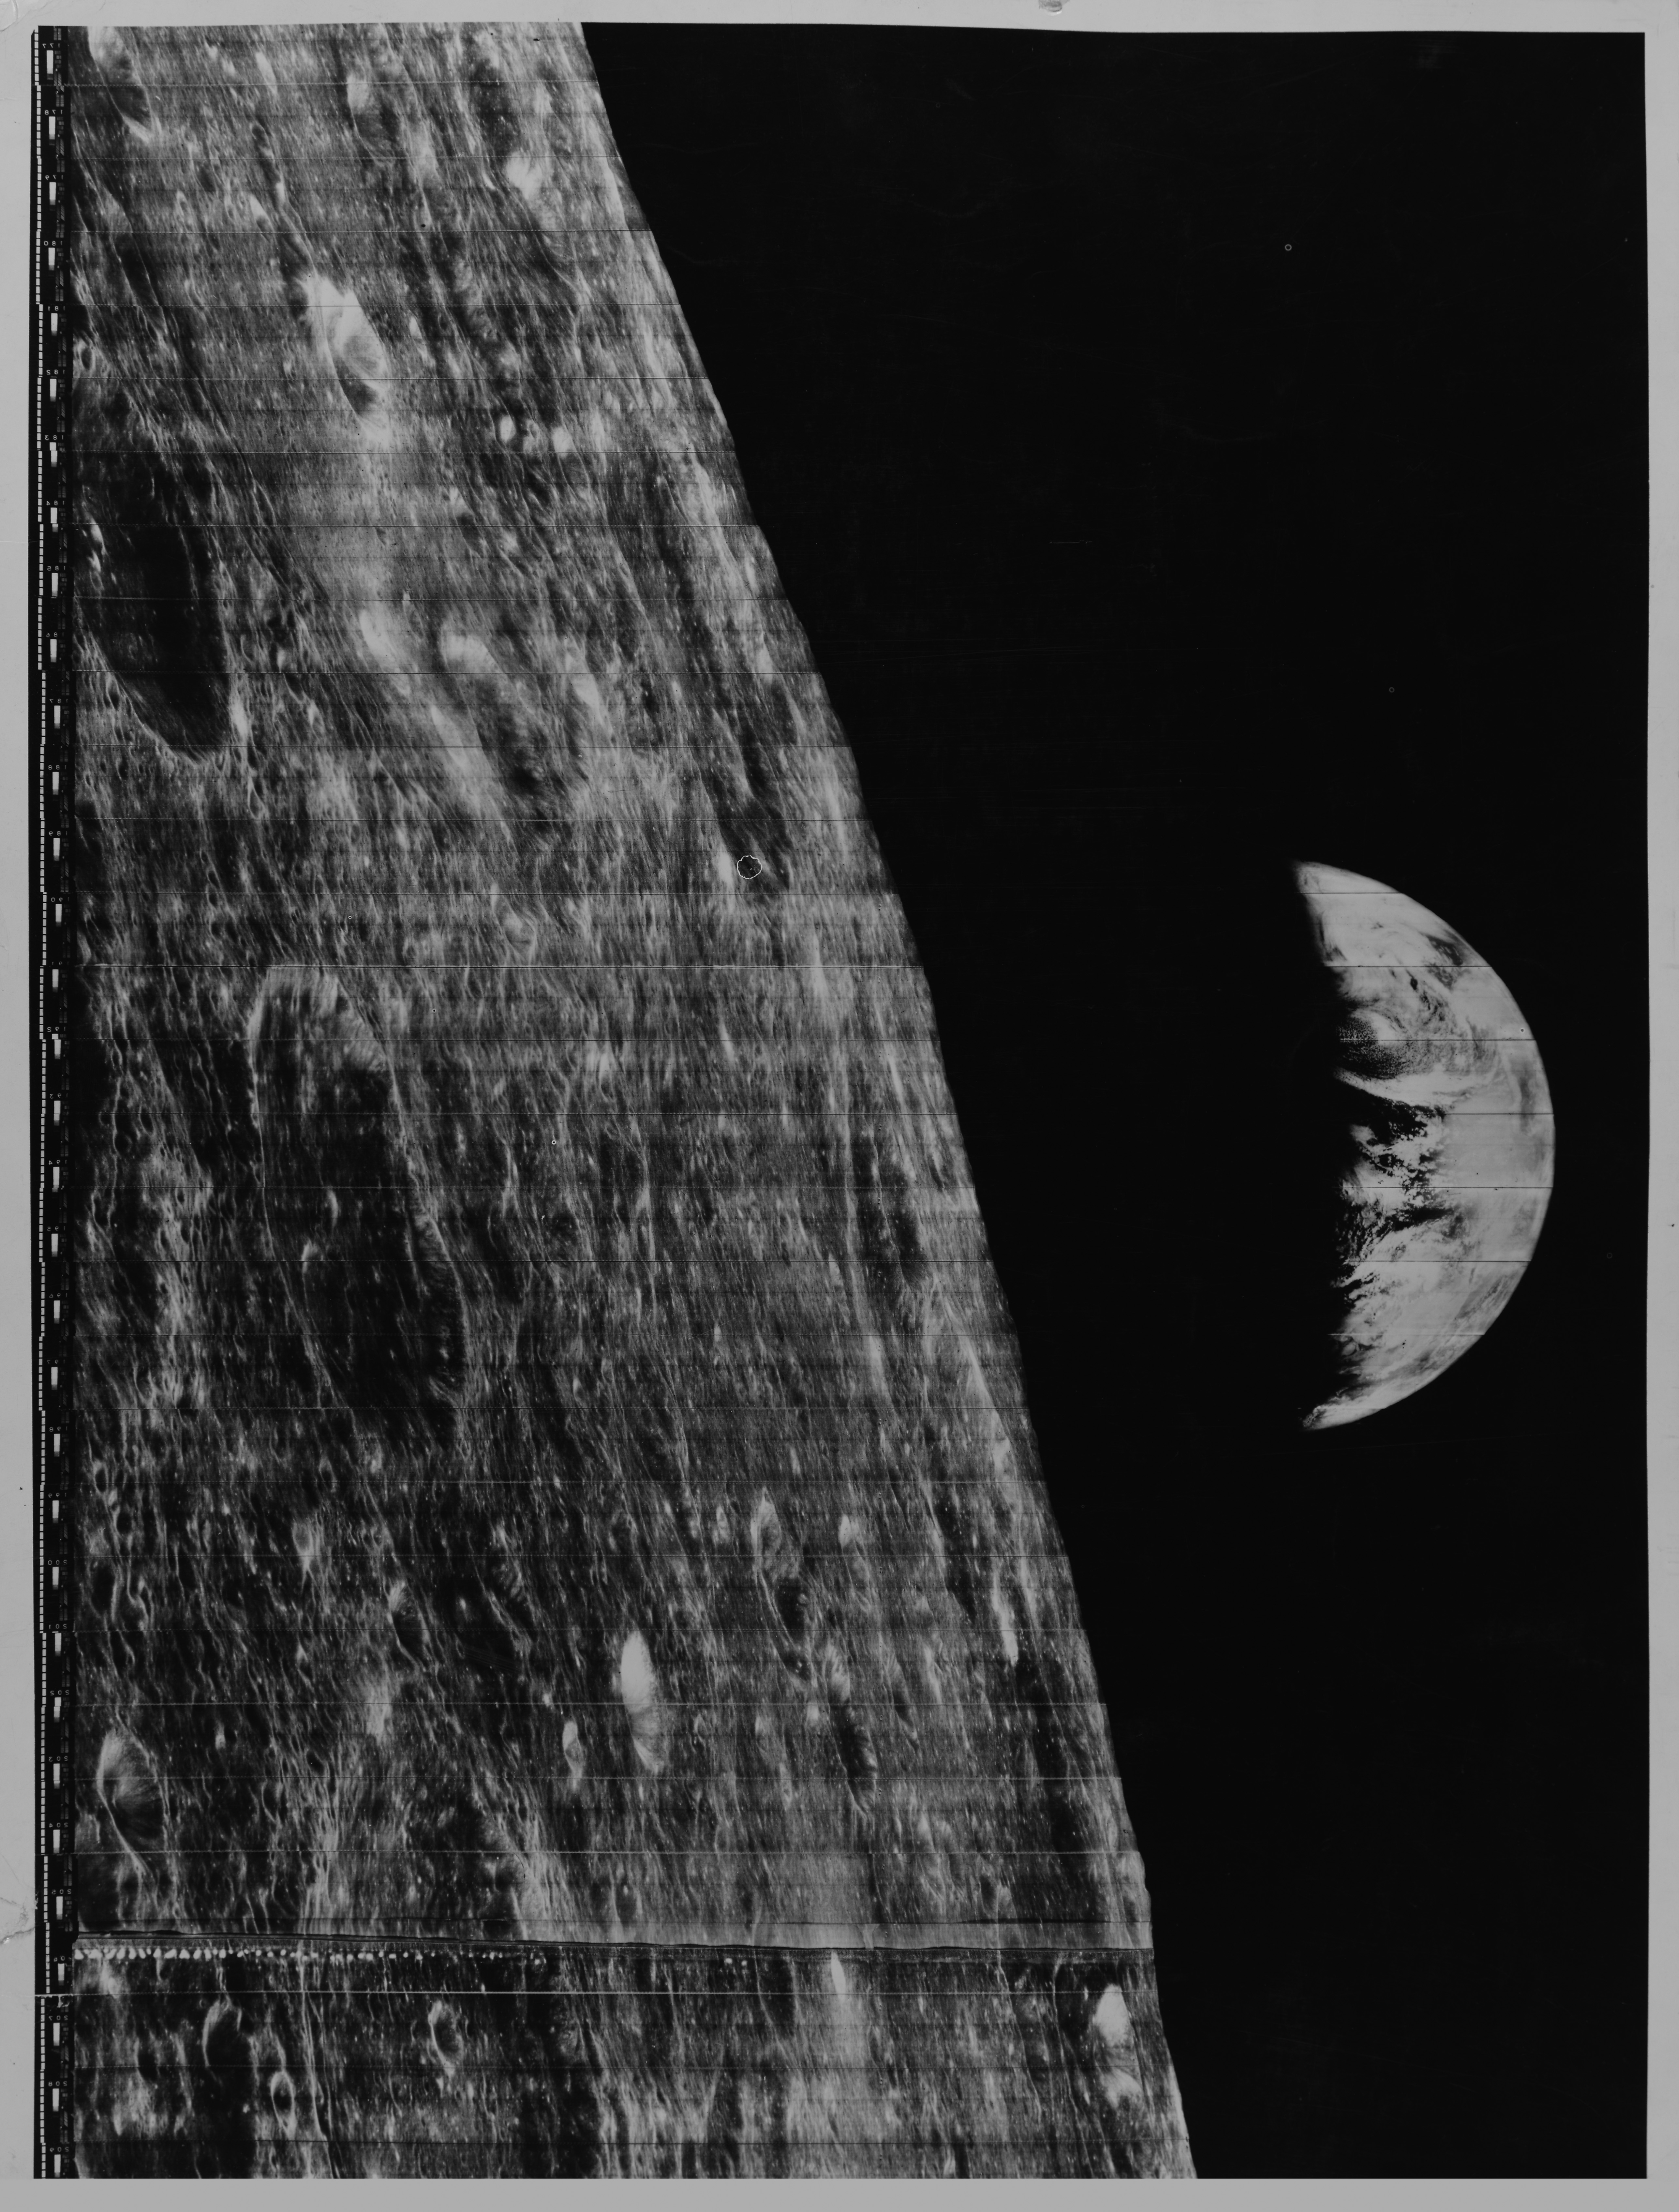 1966 Lunar Orbiter Photo of Earth and Moon